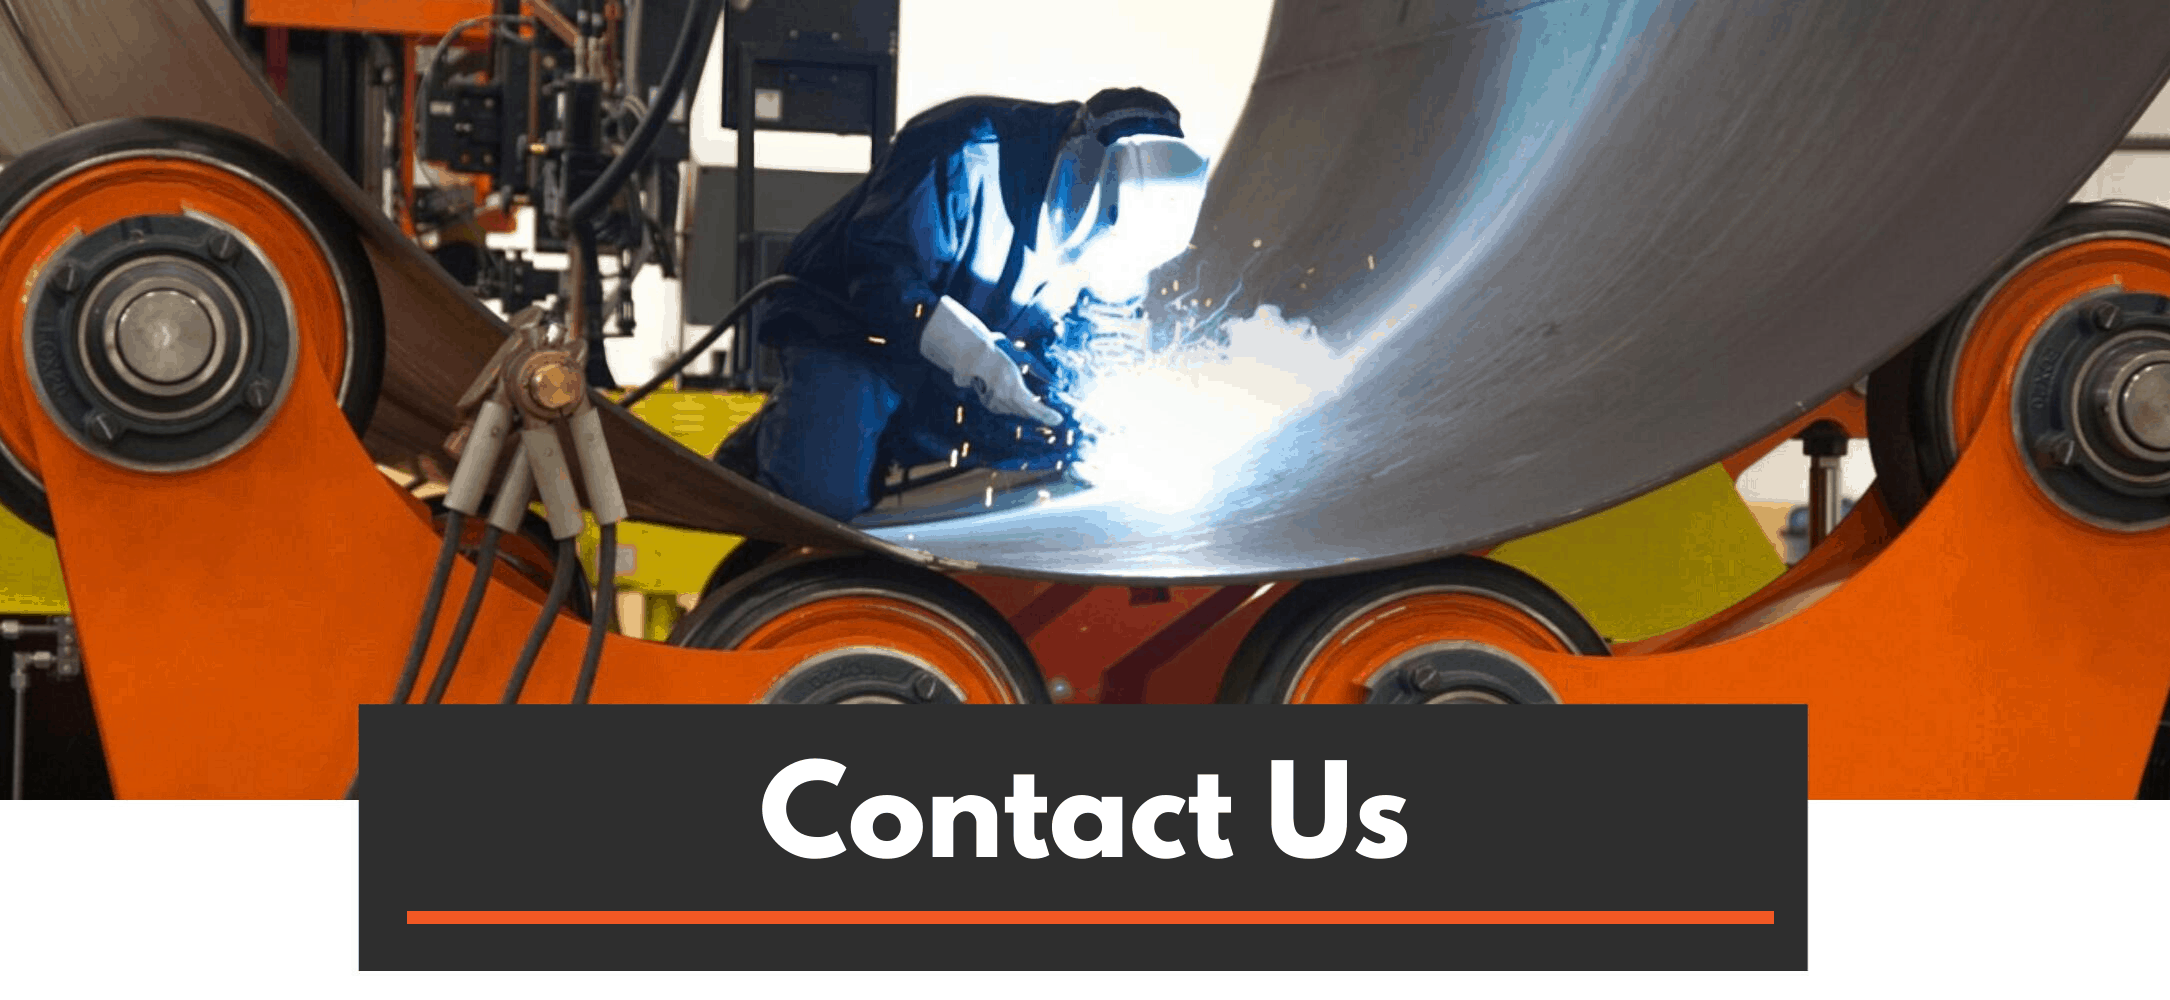 Welder performing welding inside a pipe in large weld positioning equipment